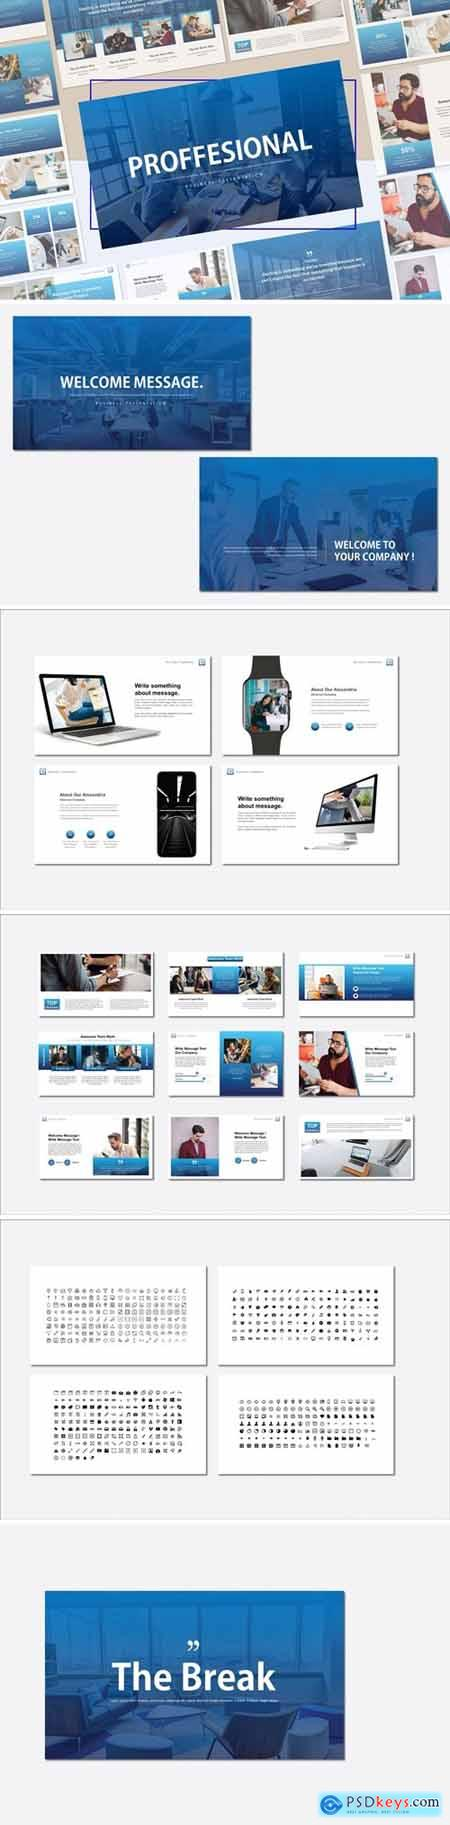 PROFFESIONAL Powerpoint, Keynote and Google Slides Templates